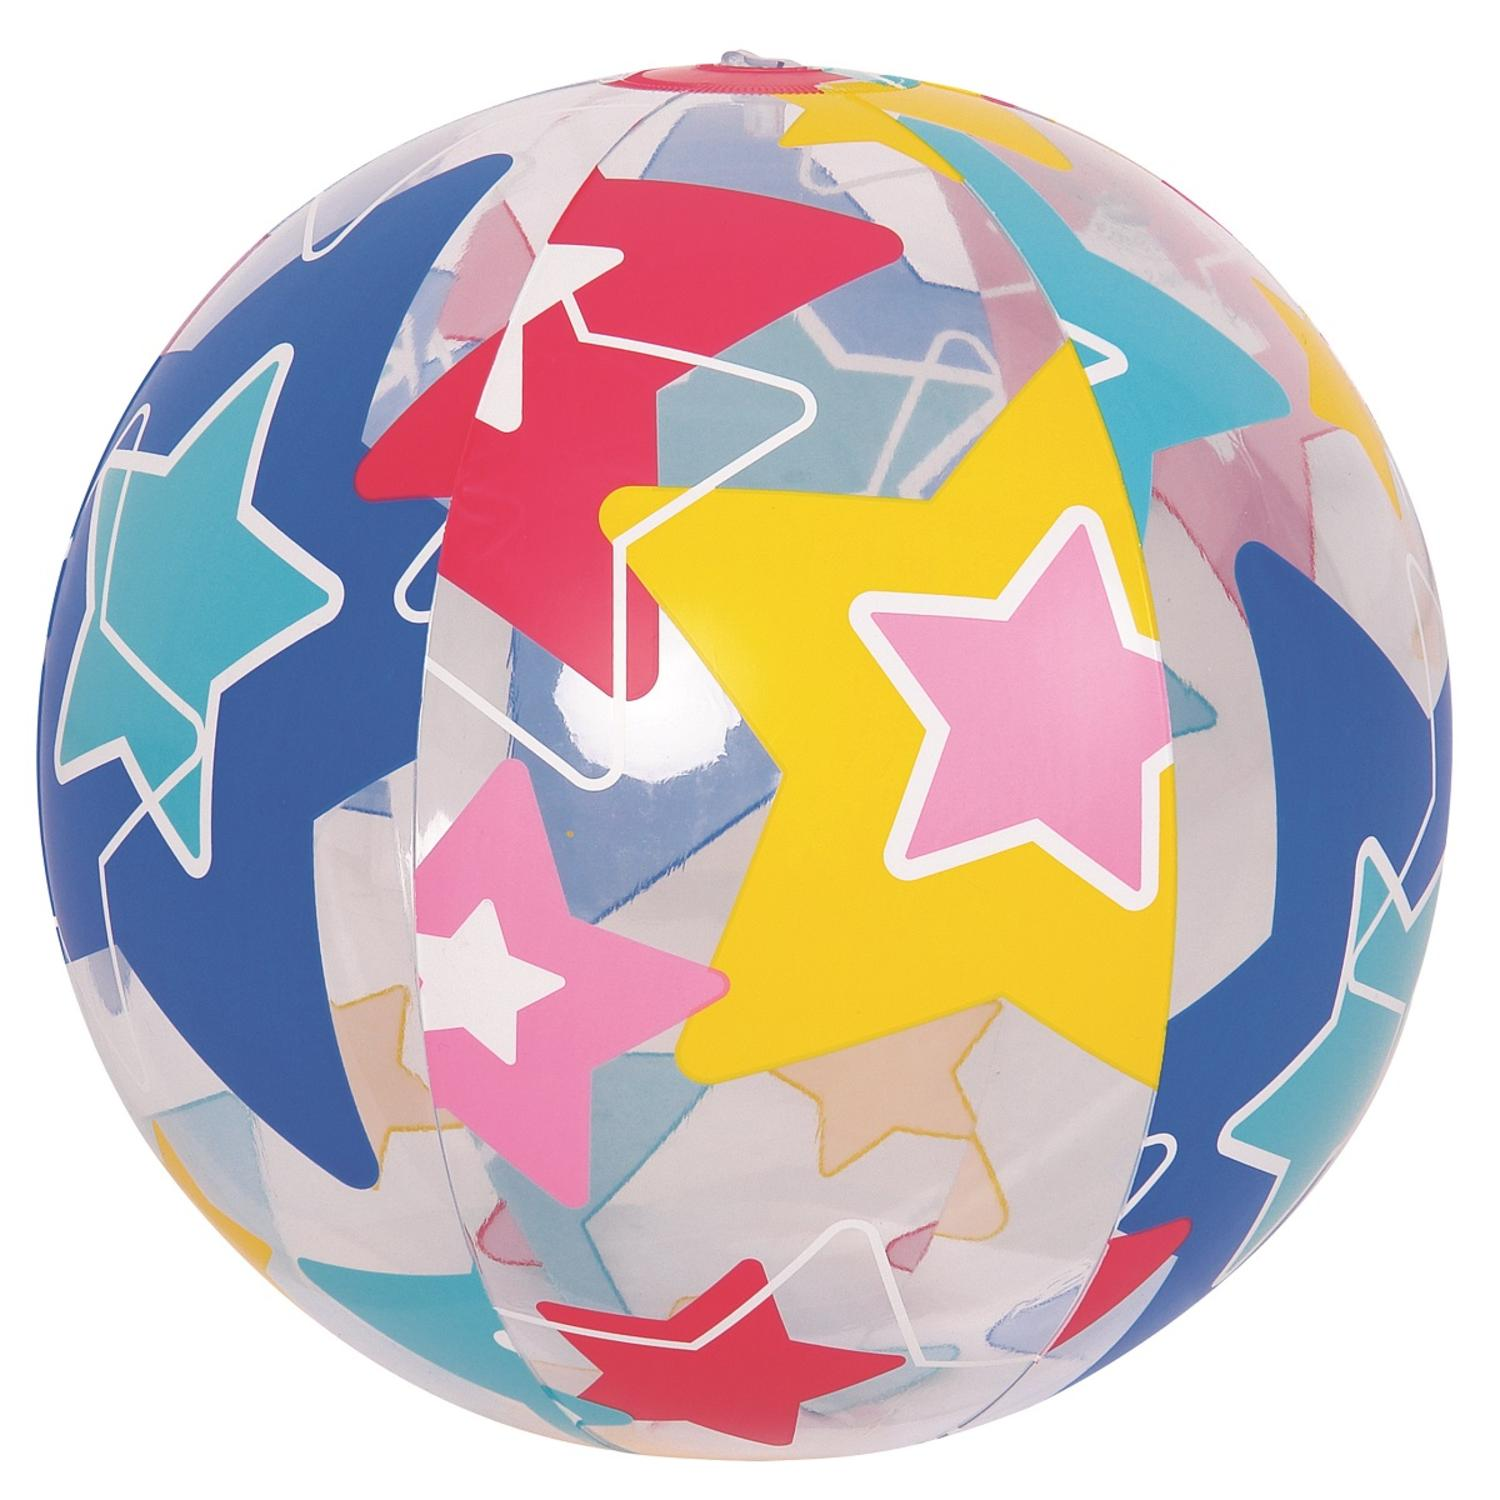 "20"" Colorful 6-Panel Star Print Inflatable Beach Ball Swimming Pool Toy by Pool Central"